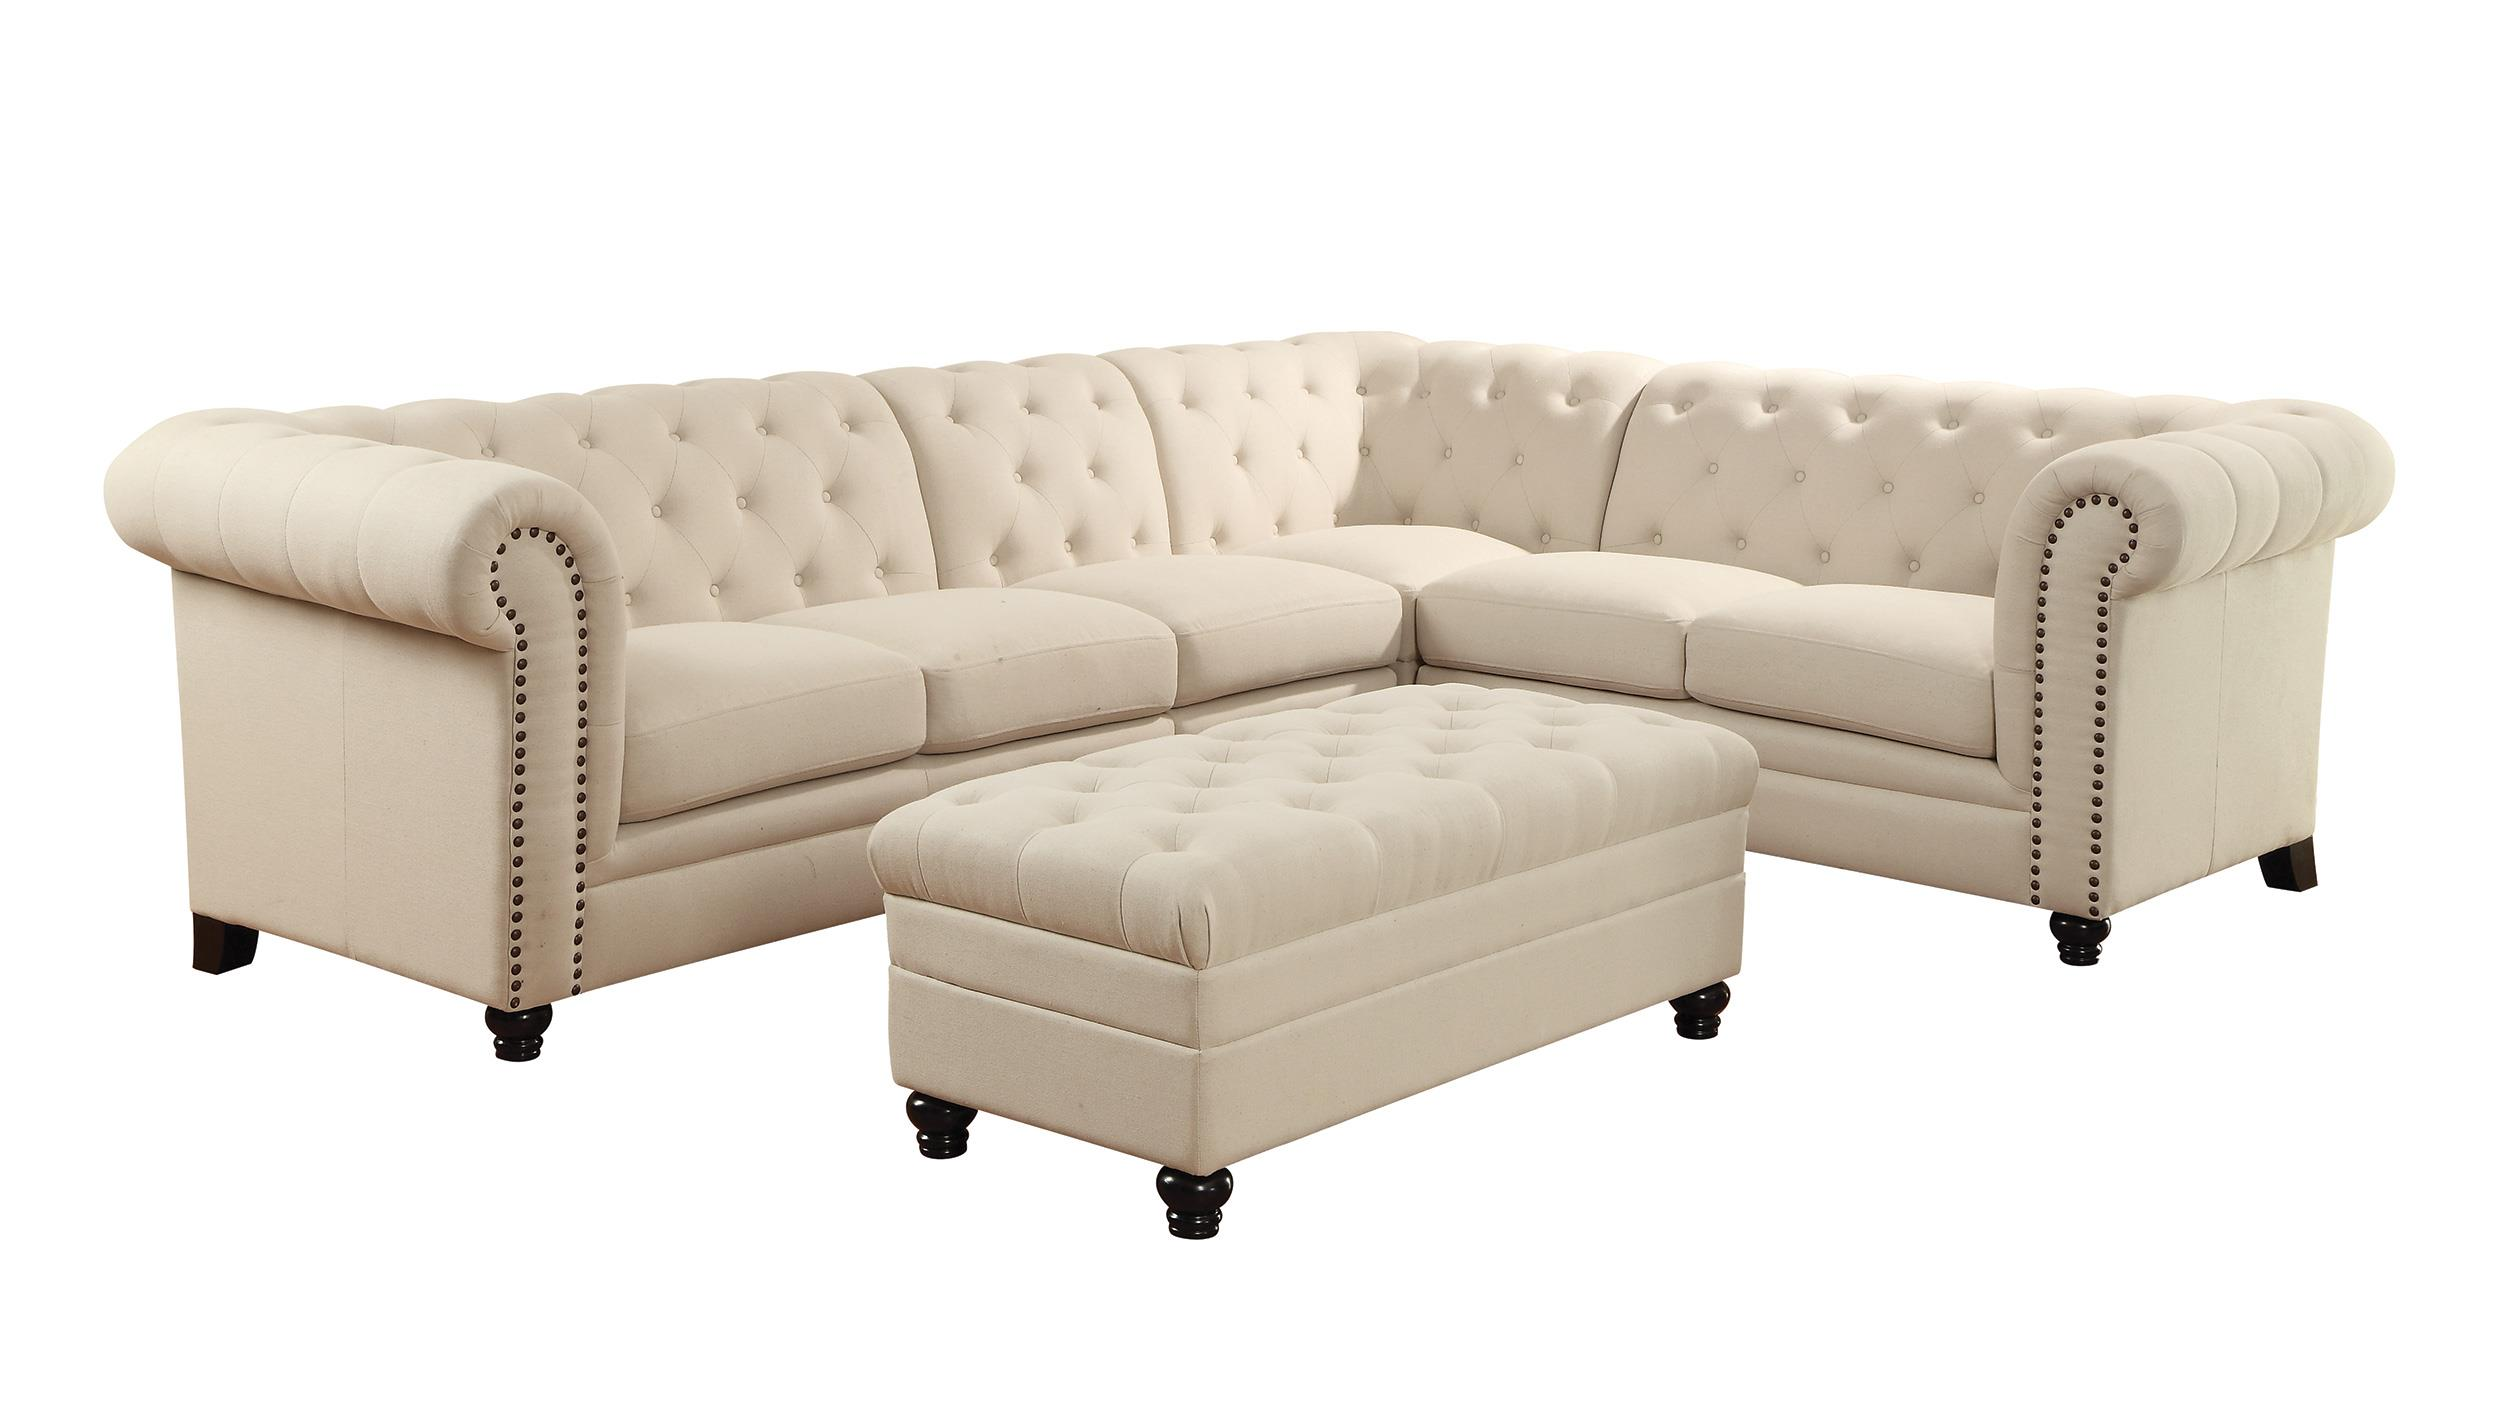 Button tufted sectional sofa with armless chair by coaster for Sectional sofas gardiners